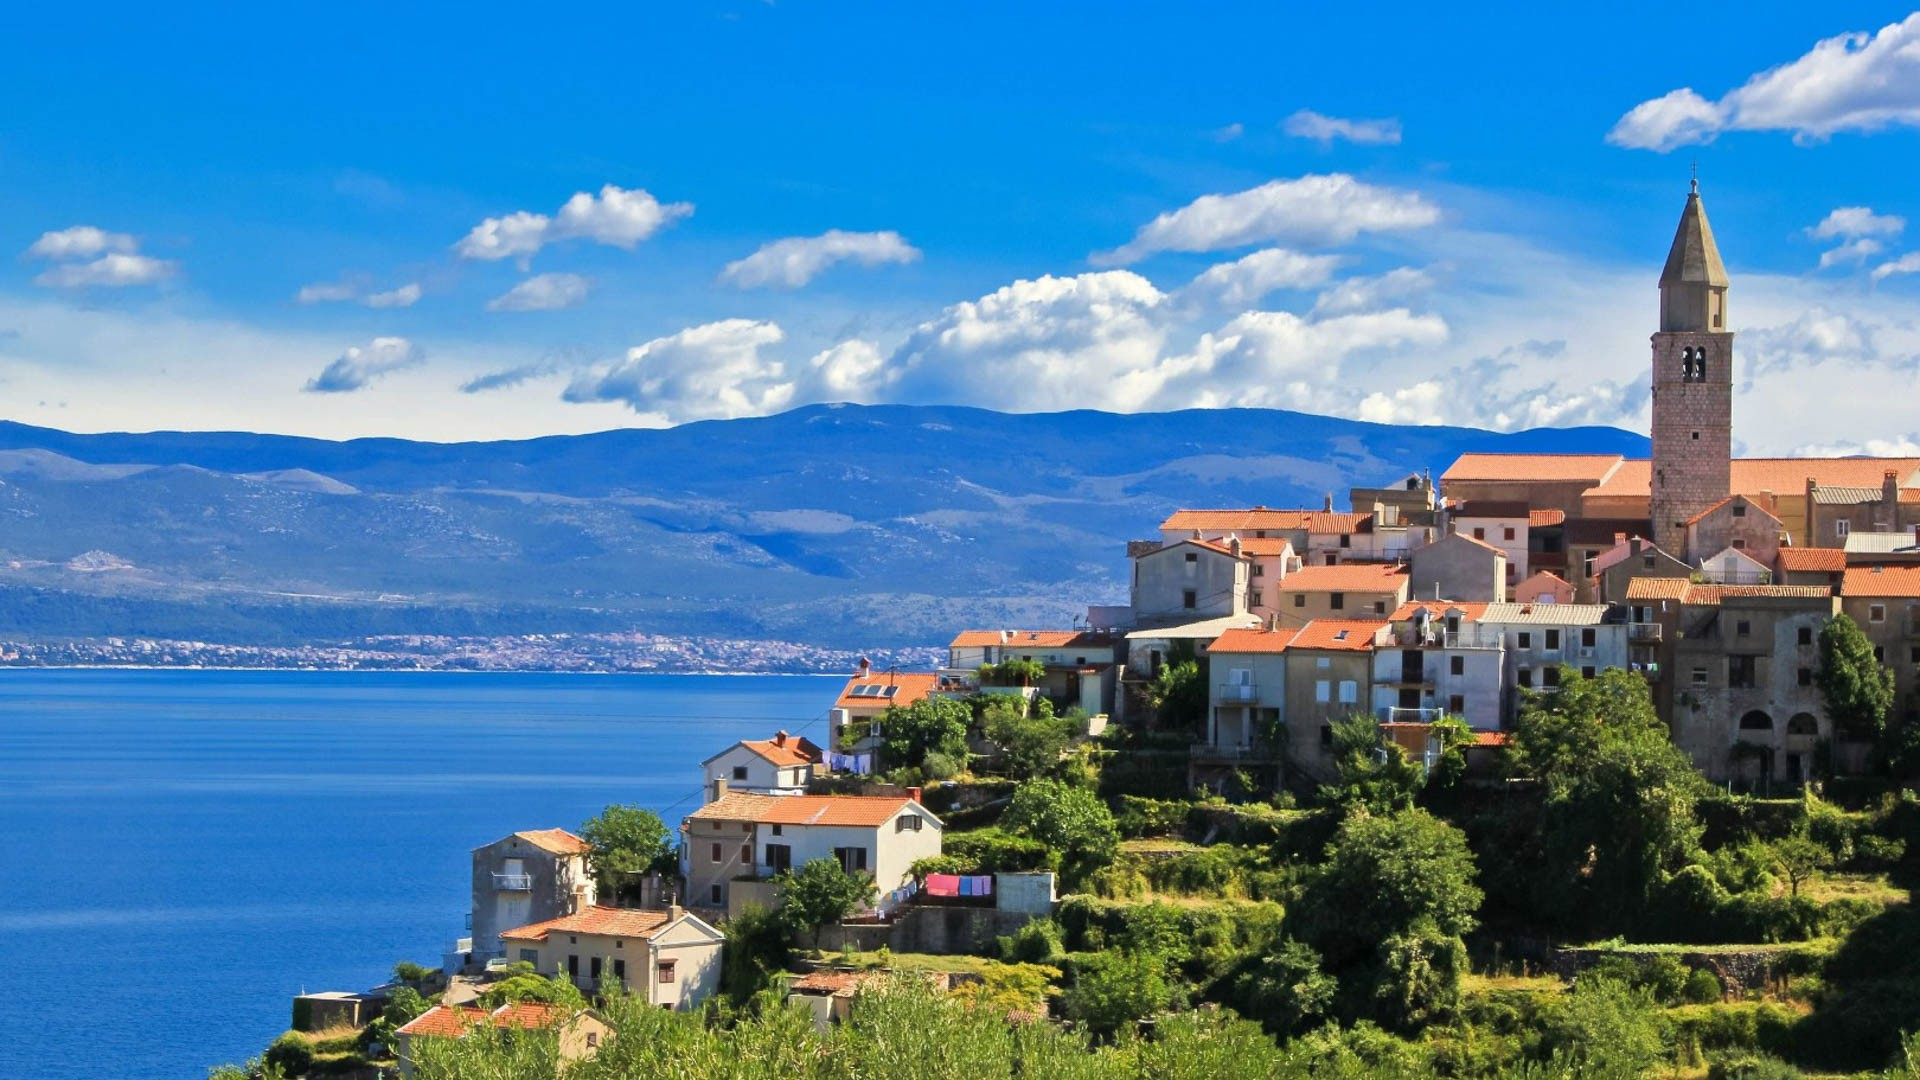 Krk - Adriatic Sea | Croatia Cruise Croatia Cruise